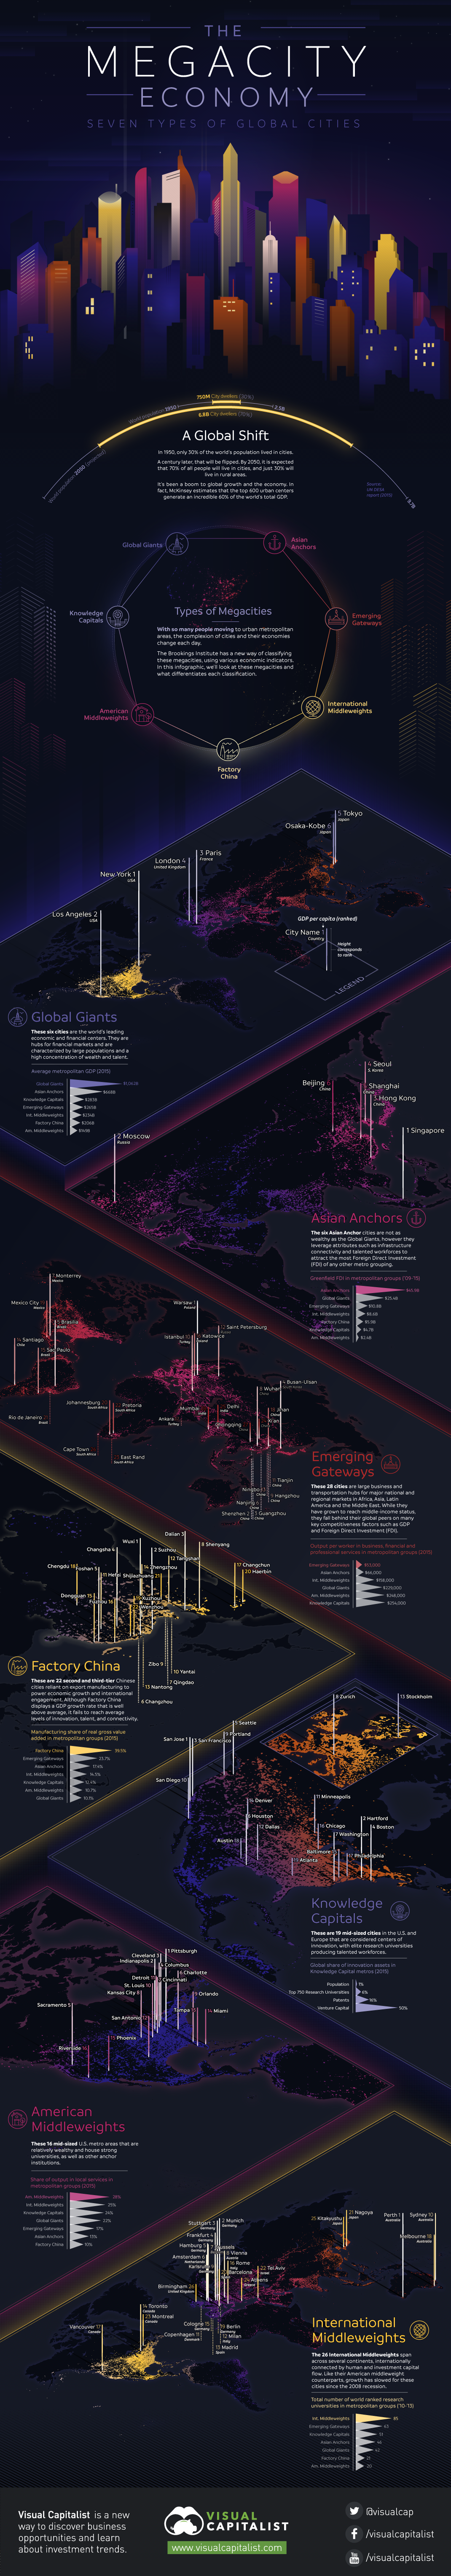 7-global-cities-infographic